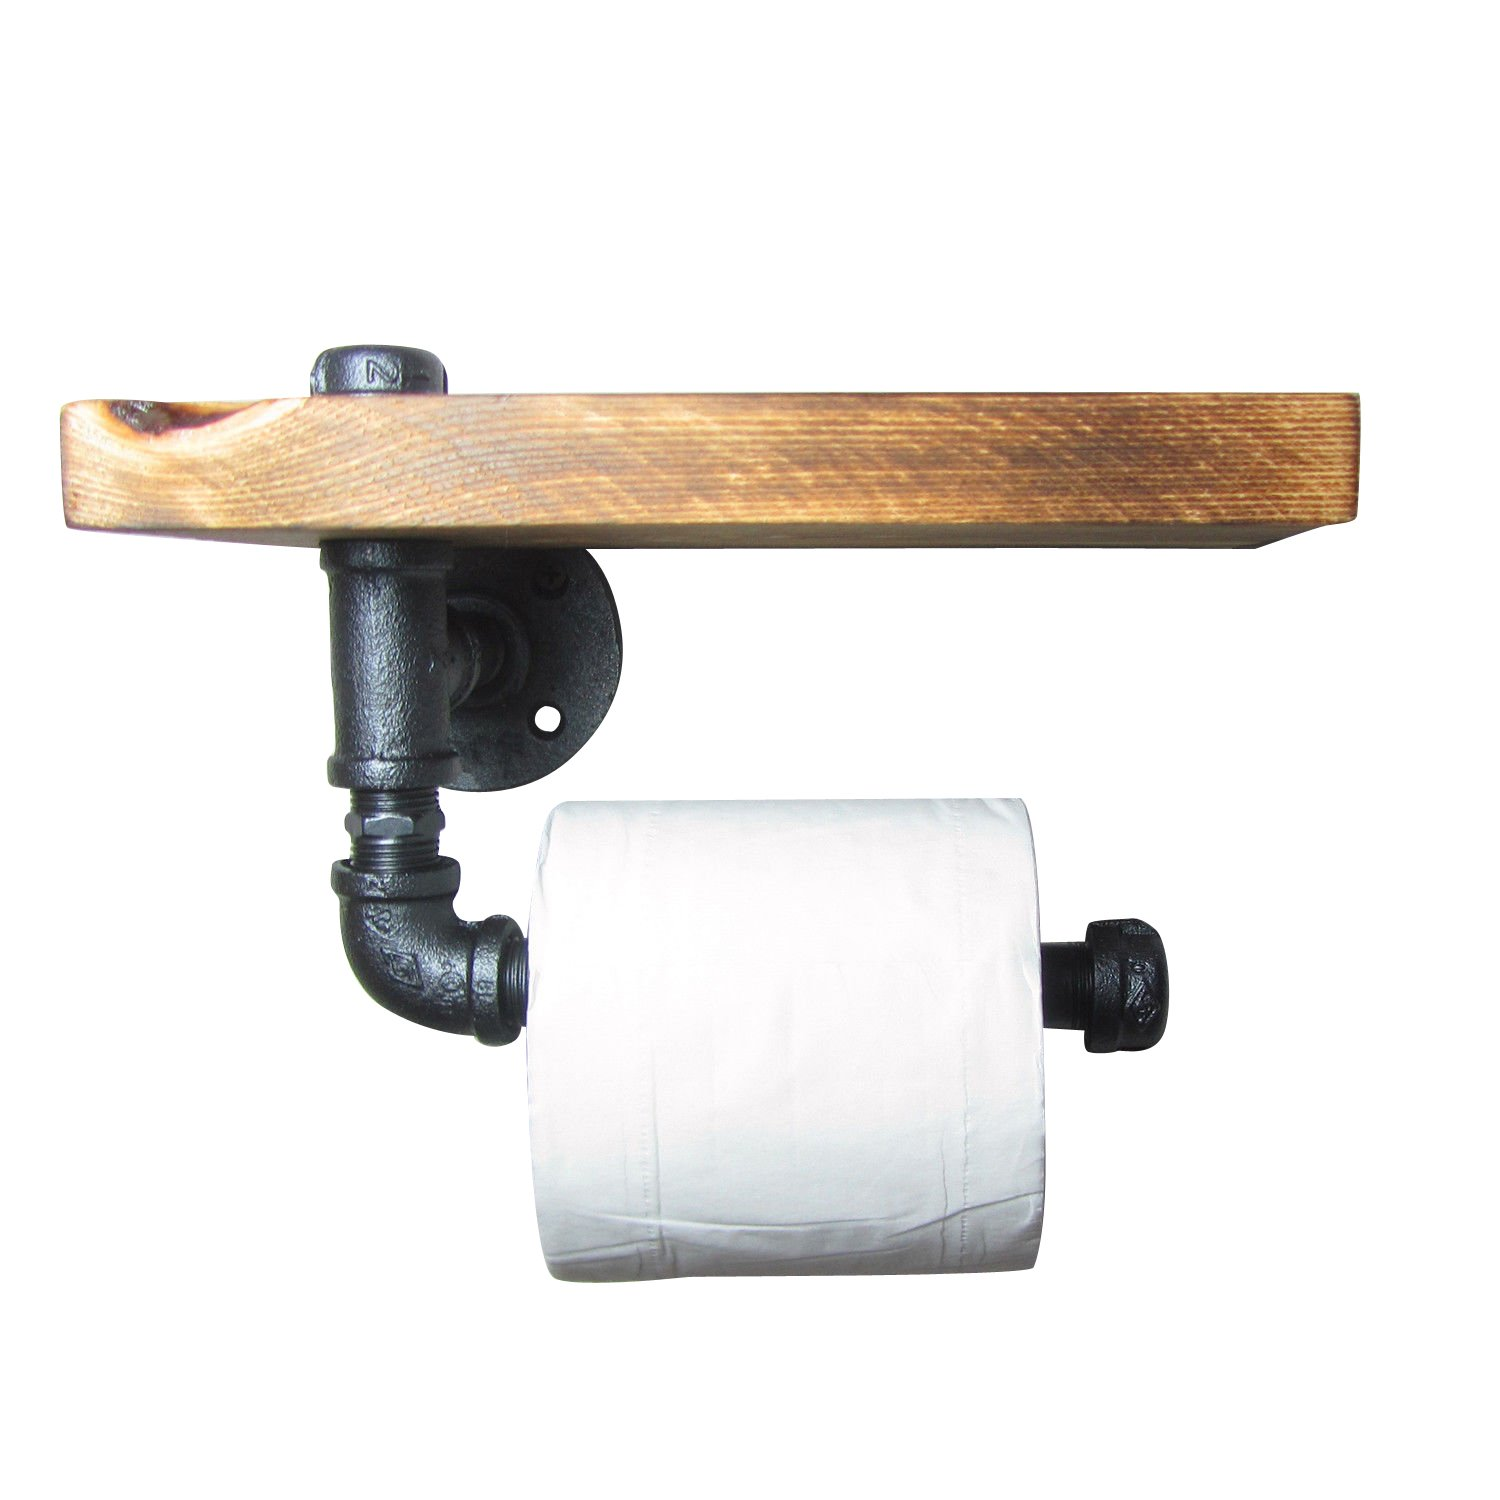 IMQOQ Vintage Industrial Style Metal Pipe Wood Shelf Toilet Paper Holder Roller